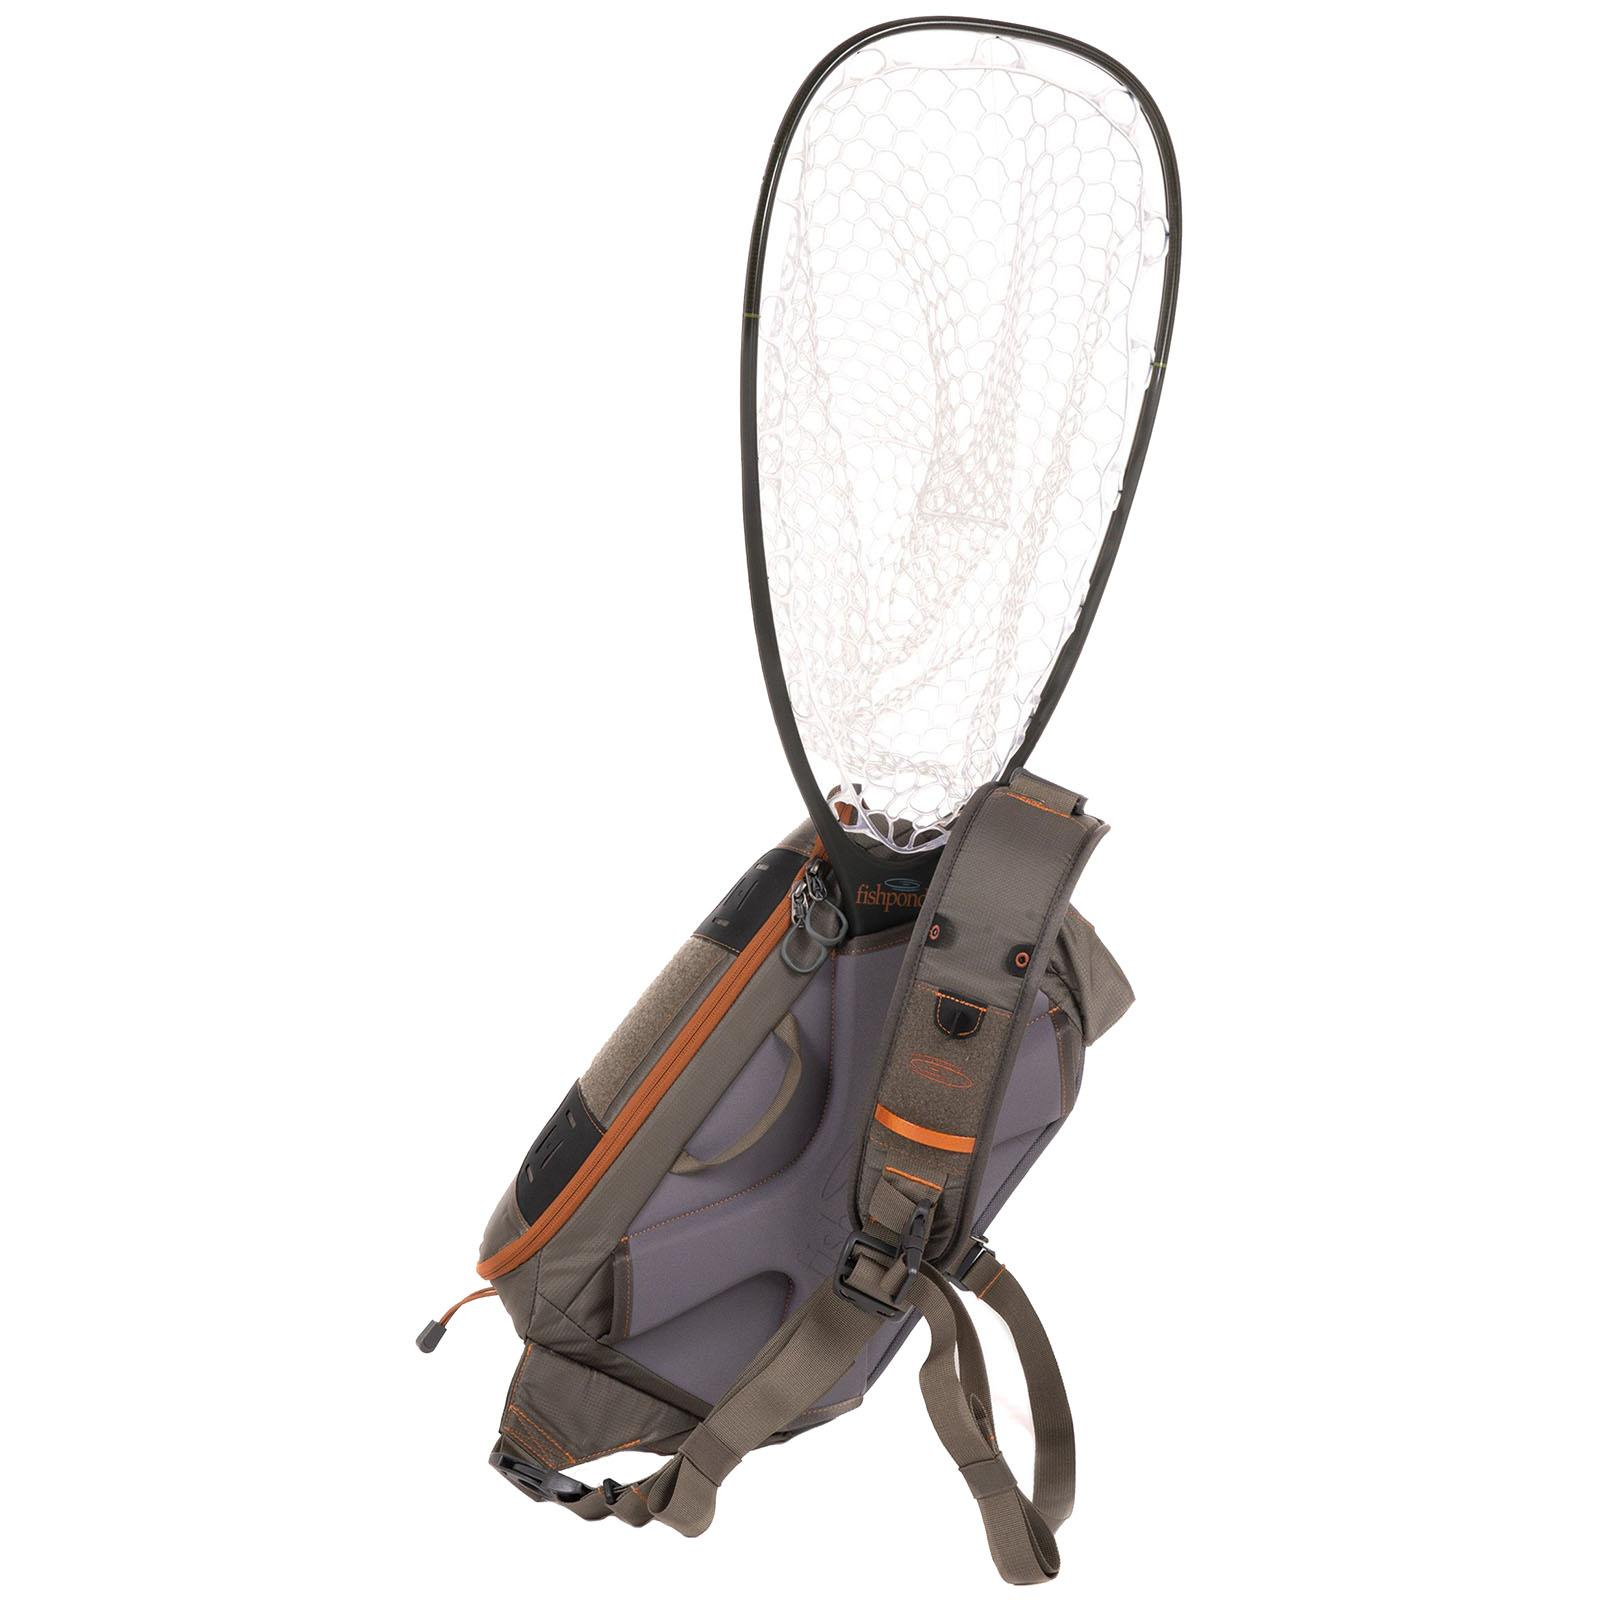 Fishpond Flathead Sling With Net